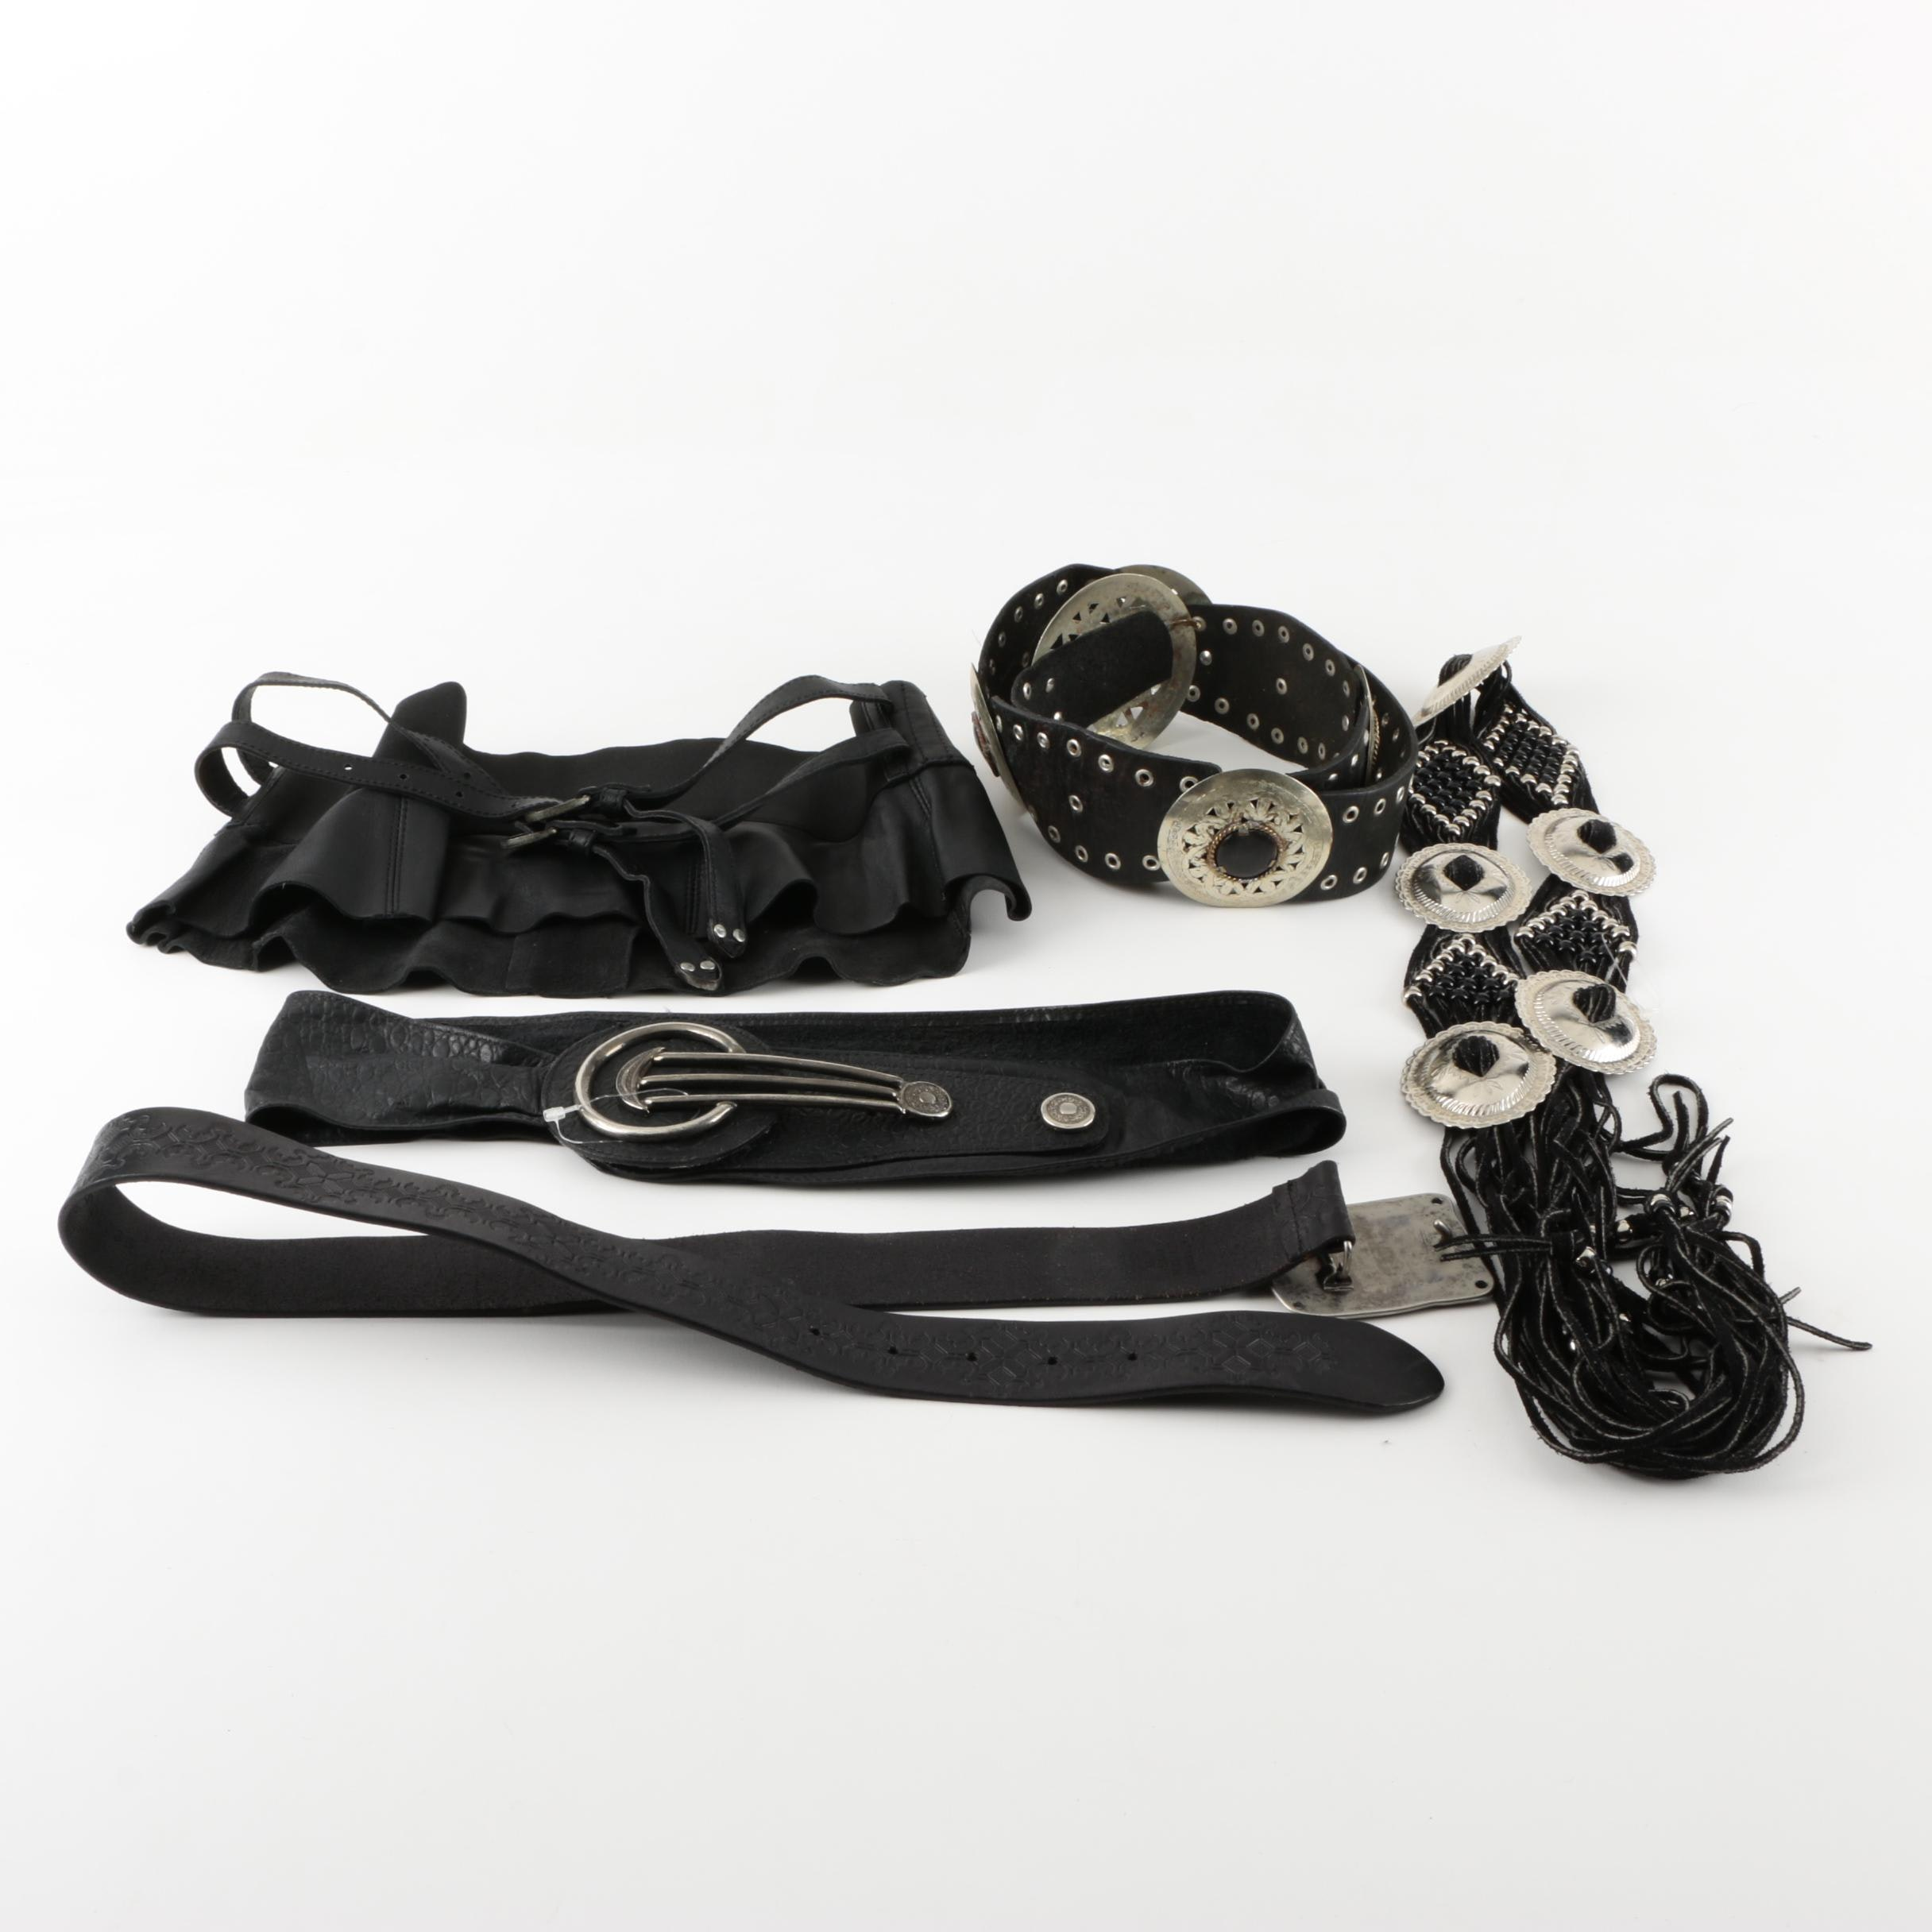 Assortment of Black Leather and Faux Leather Statement Belts